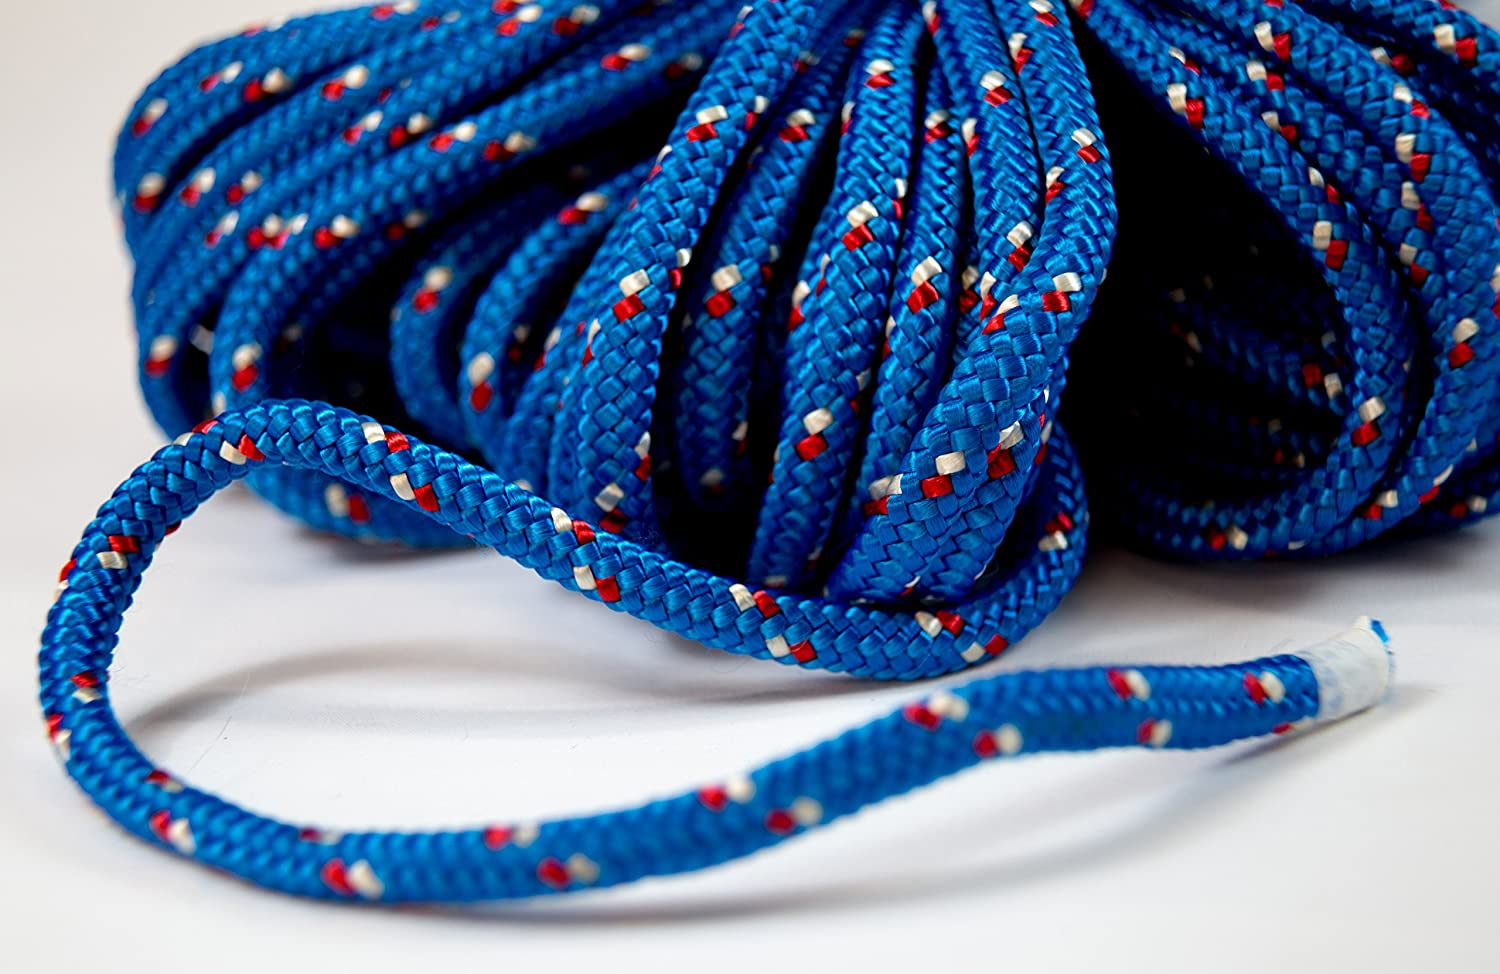 Amazon.com : Itacorda Eco-Friendly - Double Braided Rope - 5/16 inches - 150 feet - Blue - Outdoor activities : Sports & Outdoors